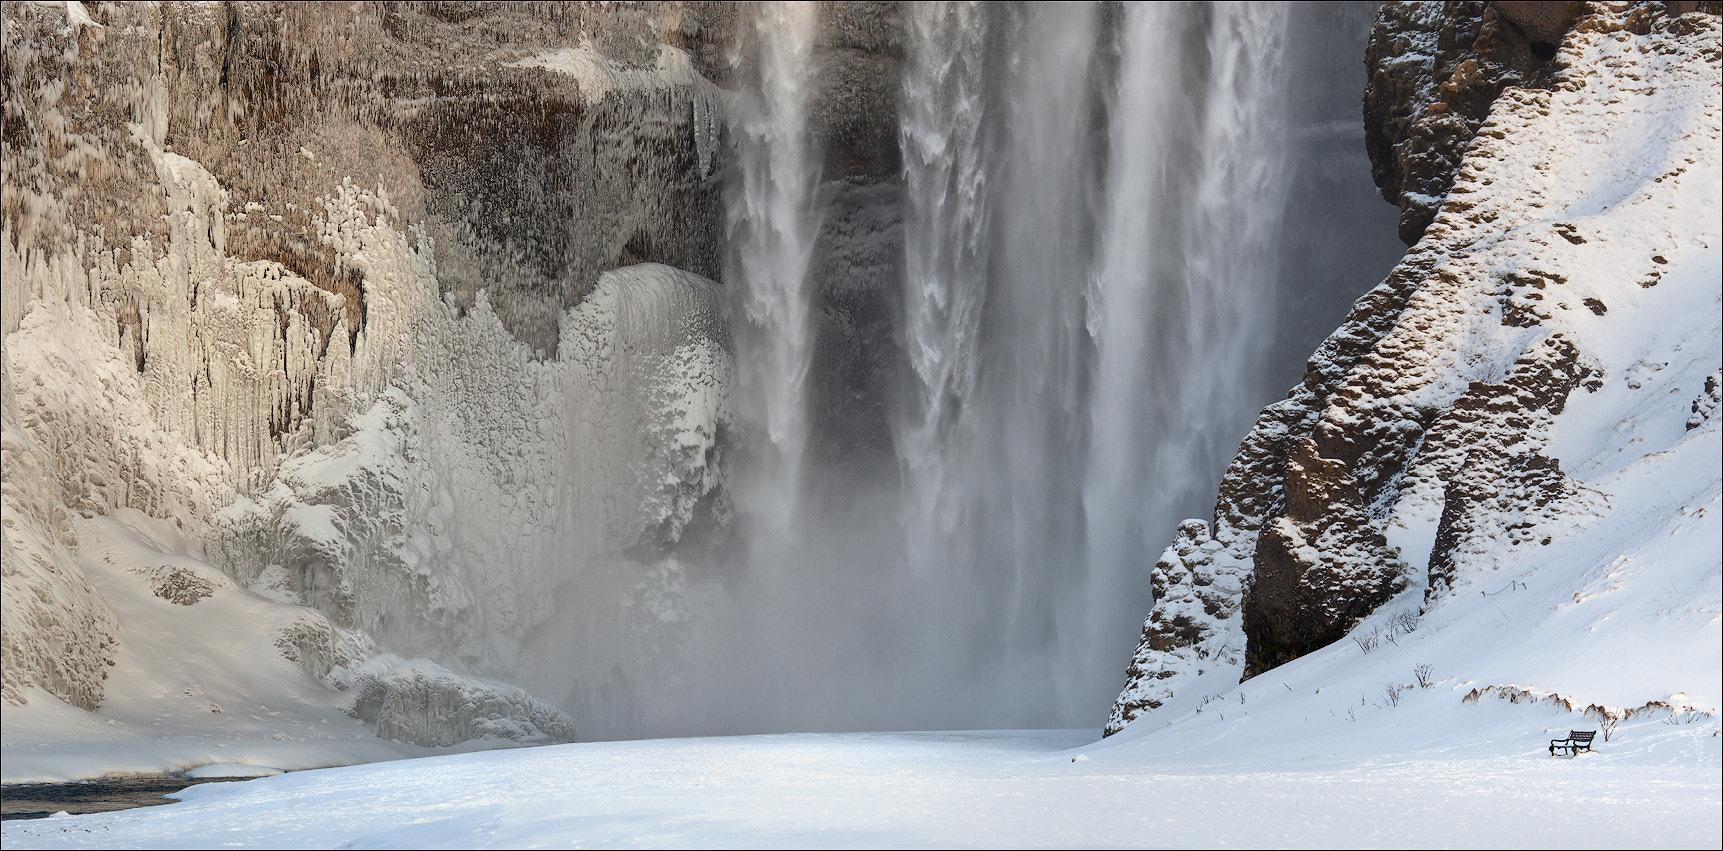 Photograph Skogafoss waterfall, Iceland by Yury Pustovoy on 500px